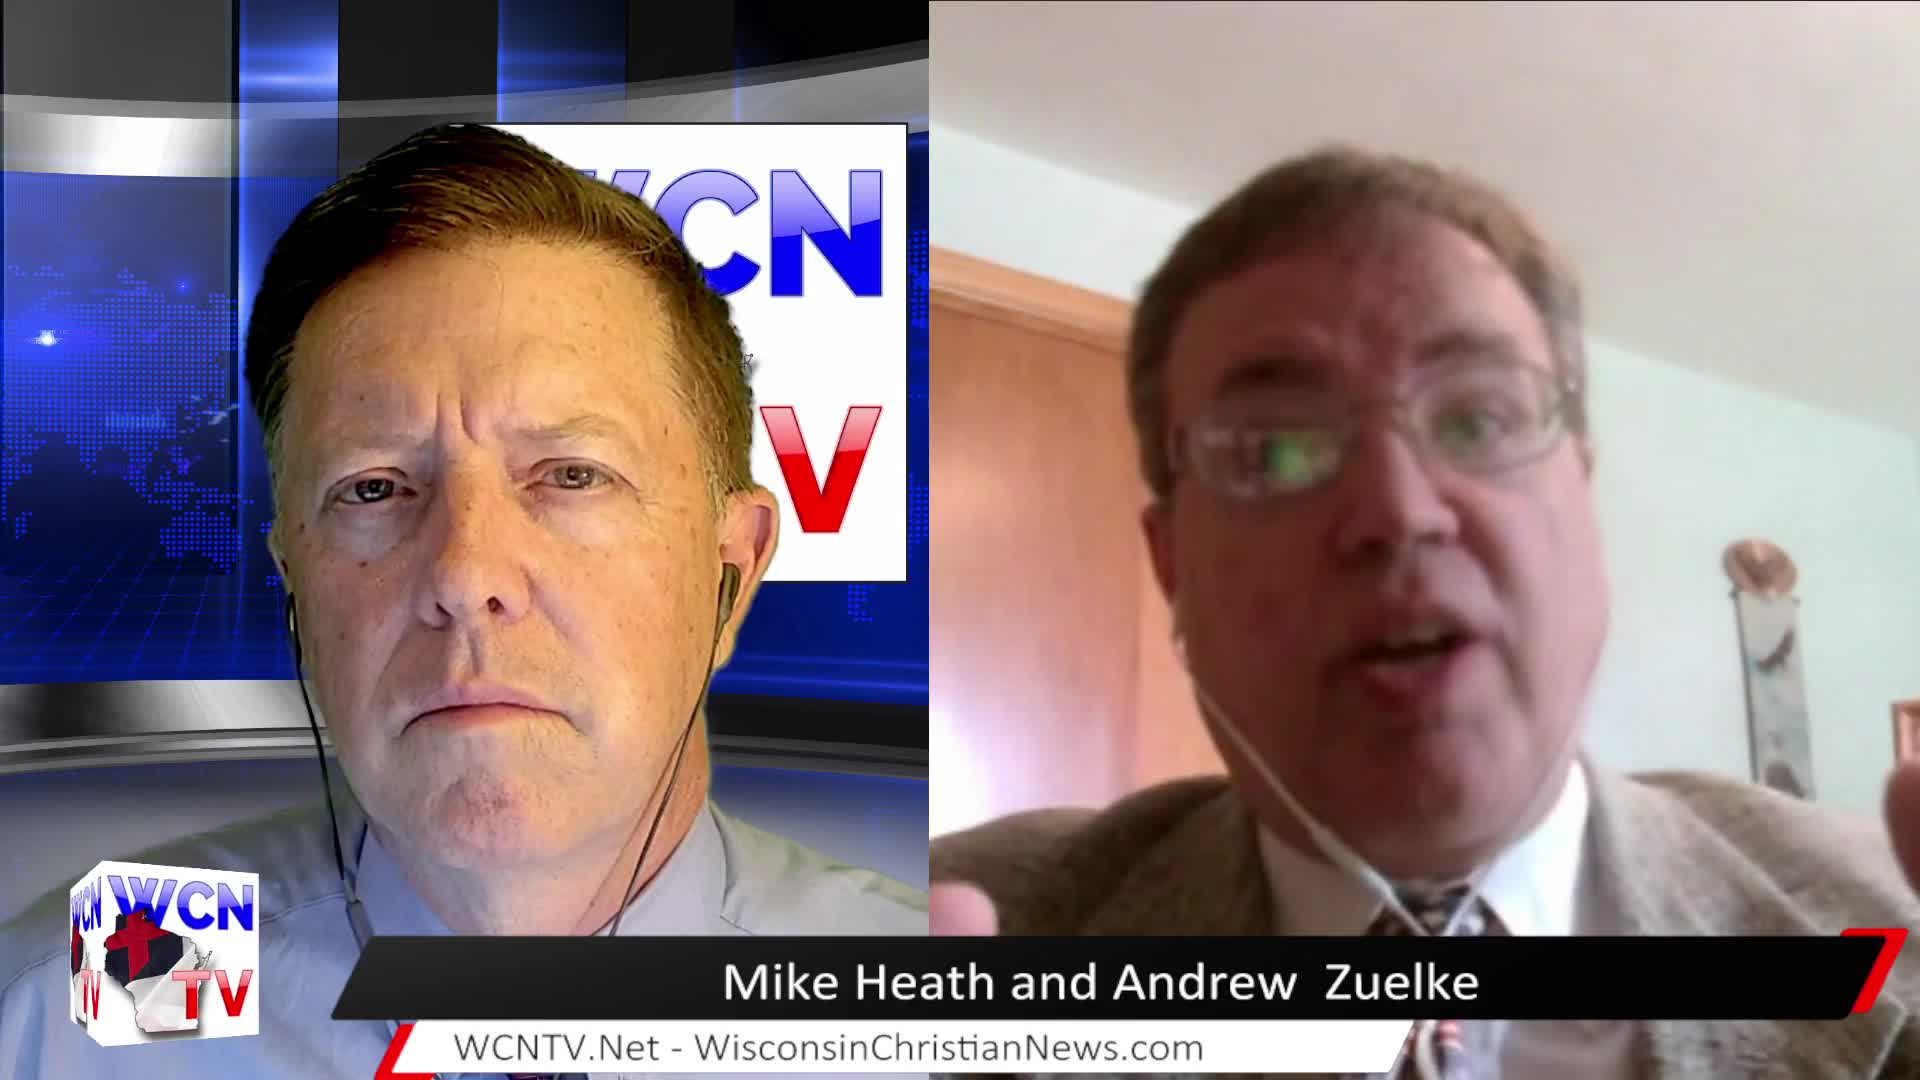 WCN-TV | August 11th, 2021 | Mike Heath and Andrew Zuelke